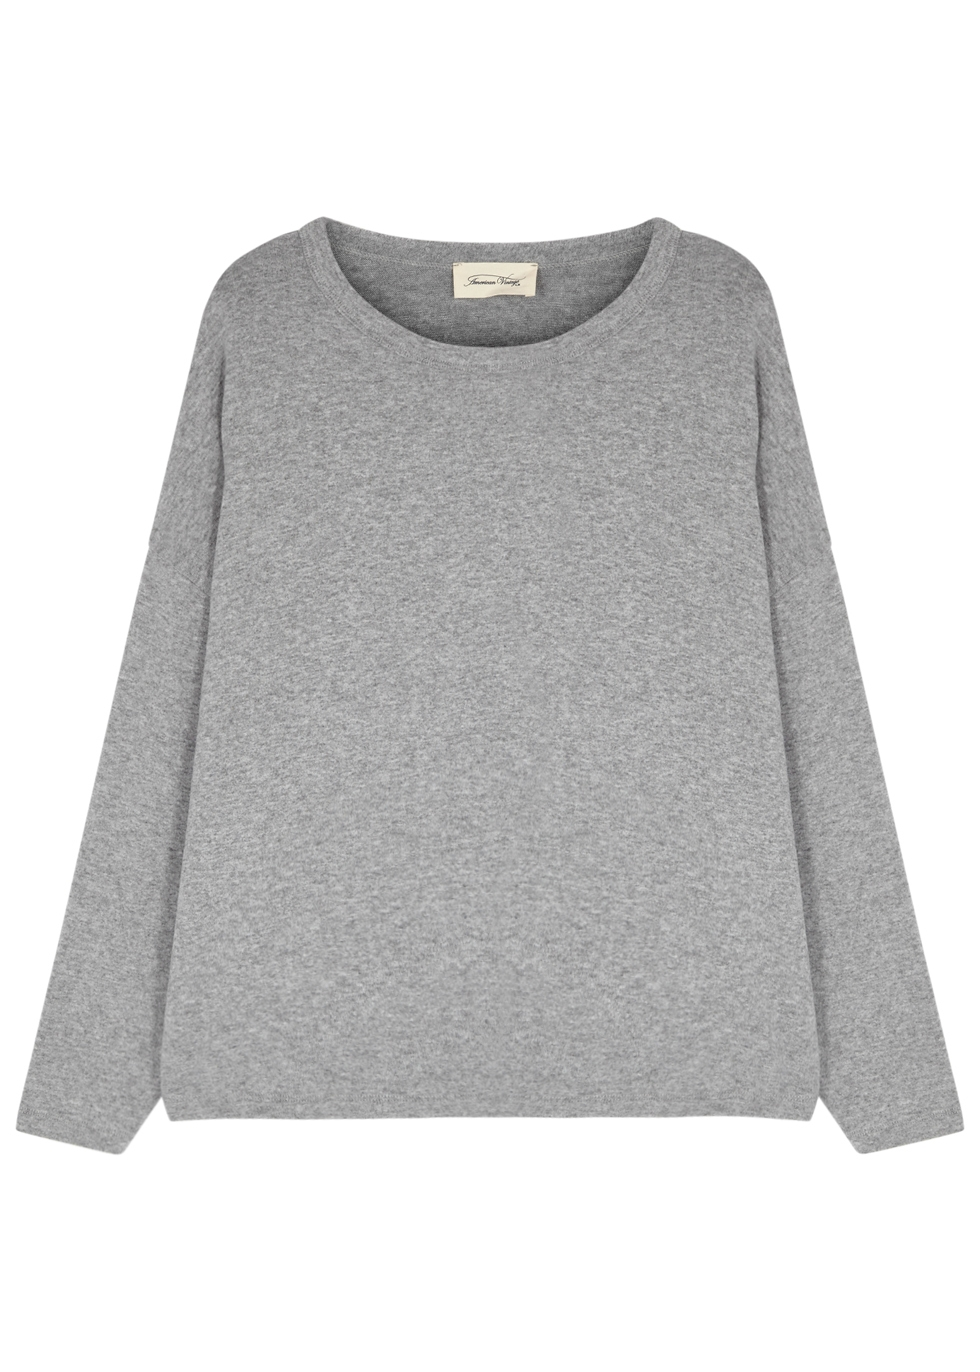 AMERICAN VINTAGE VETINGTON GREY JERSEY TOP